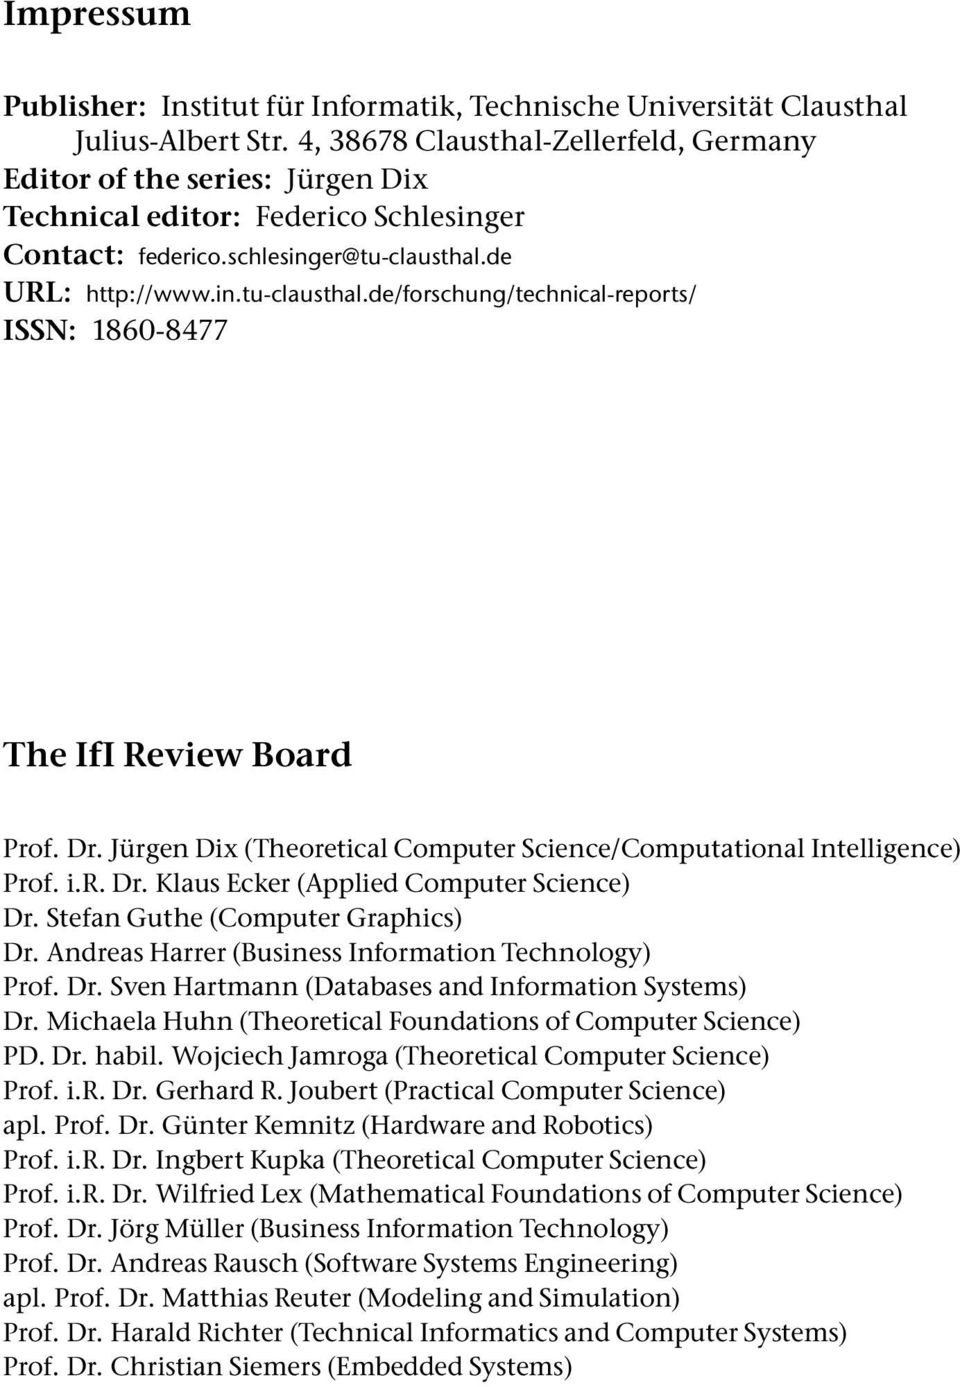 de URL: http://www.in.tu-clausthal.de/forschung/technical-reports/ ISSN: 1860-8477 The IfI Review Board Prof. Dr. Jürgen Dix (Theoretical Computer Science/Computational Intelligence) Prof. i.r. Dr. Klaus Ecker (Applied Computer Science) Dr.